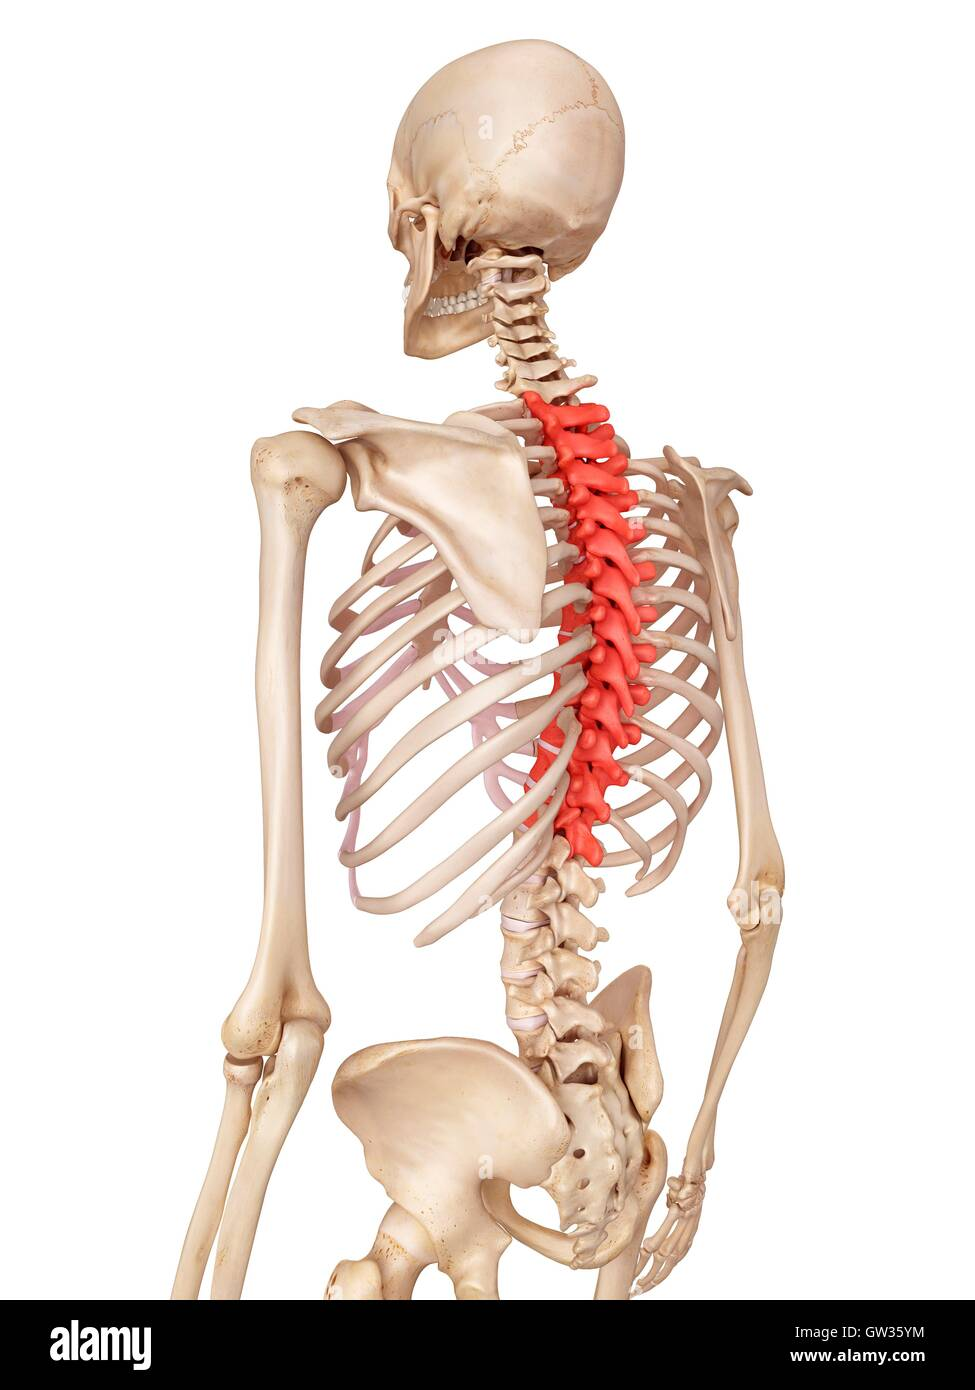 Thoracic Spine Stock Photos Thoracic Spine Stock Images Alamy